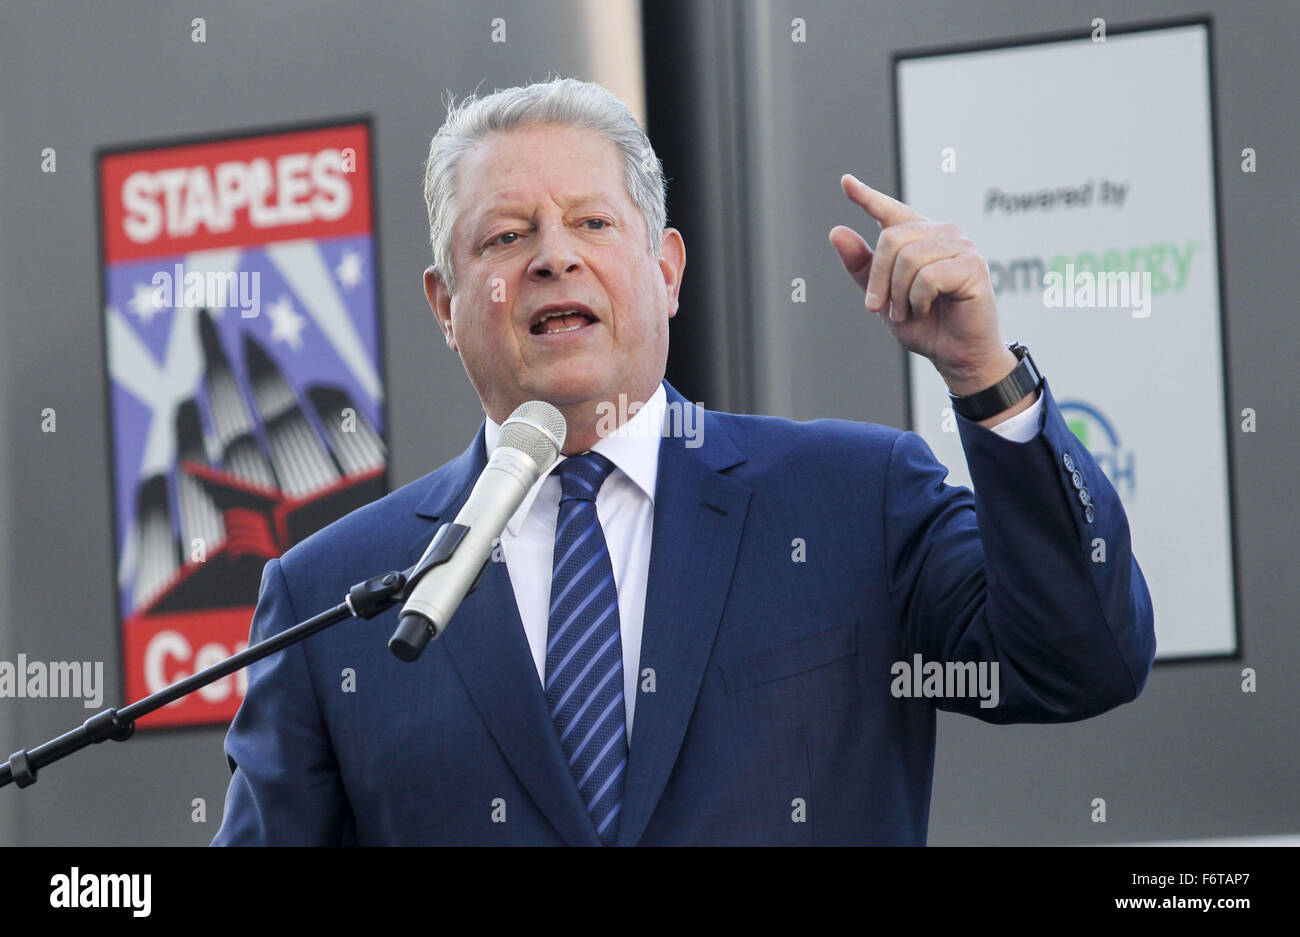 Los Angeles, California, USA. 19th Nov, 2015. Former Vice President Al Gore speaks during a ceremony to unveil and - Stock Image